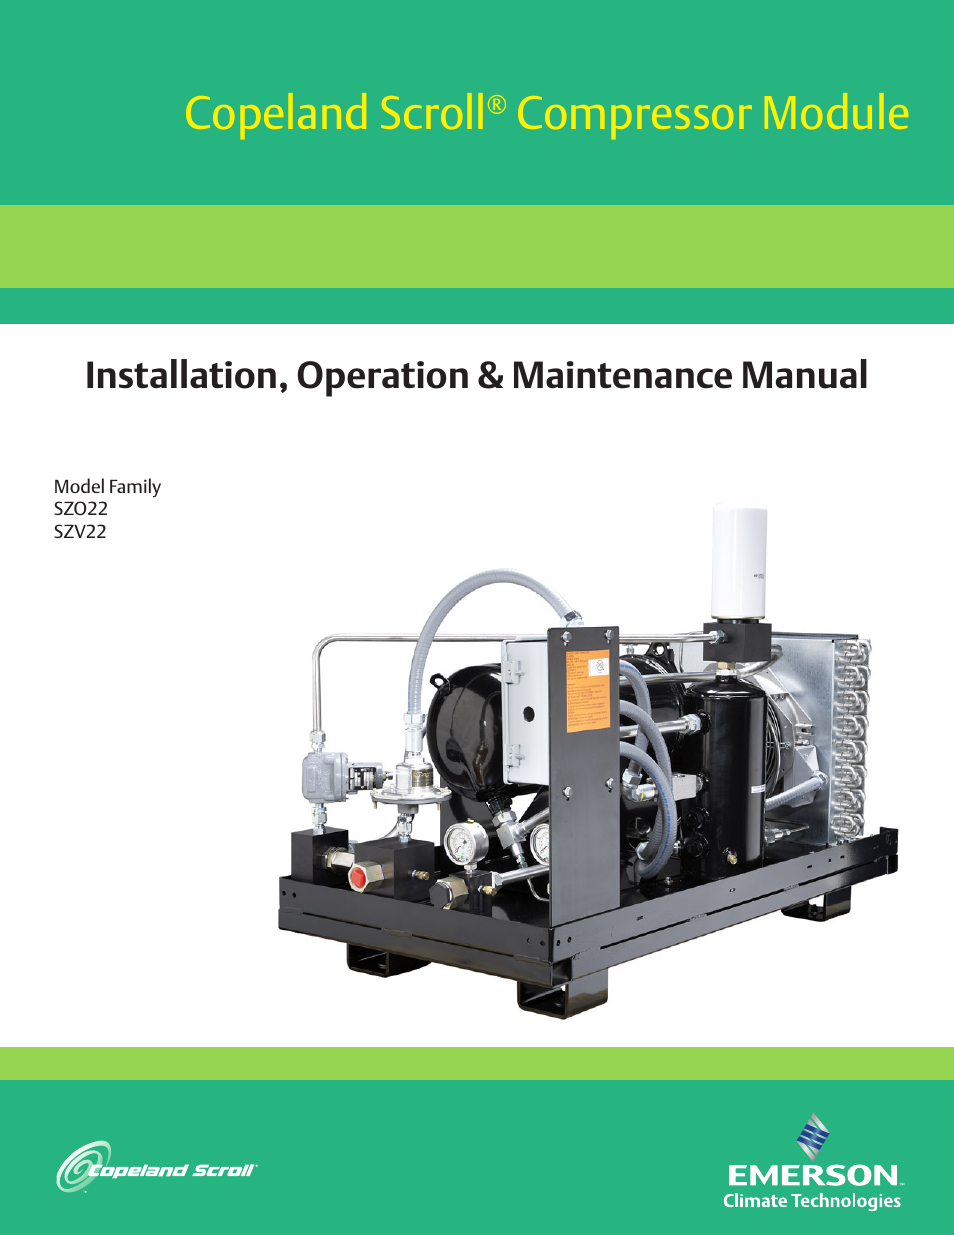 Emerson COPELAND SCROLL SZO22 User Manual | 34 pages | Also for: COPELAND  SCROLL SZV22